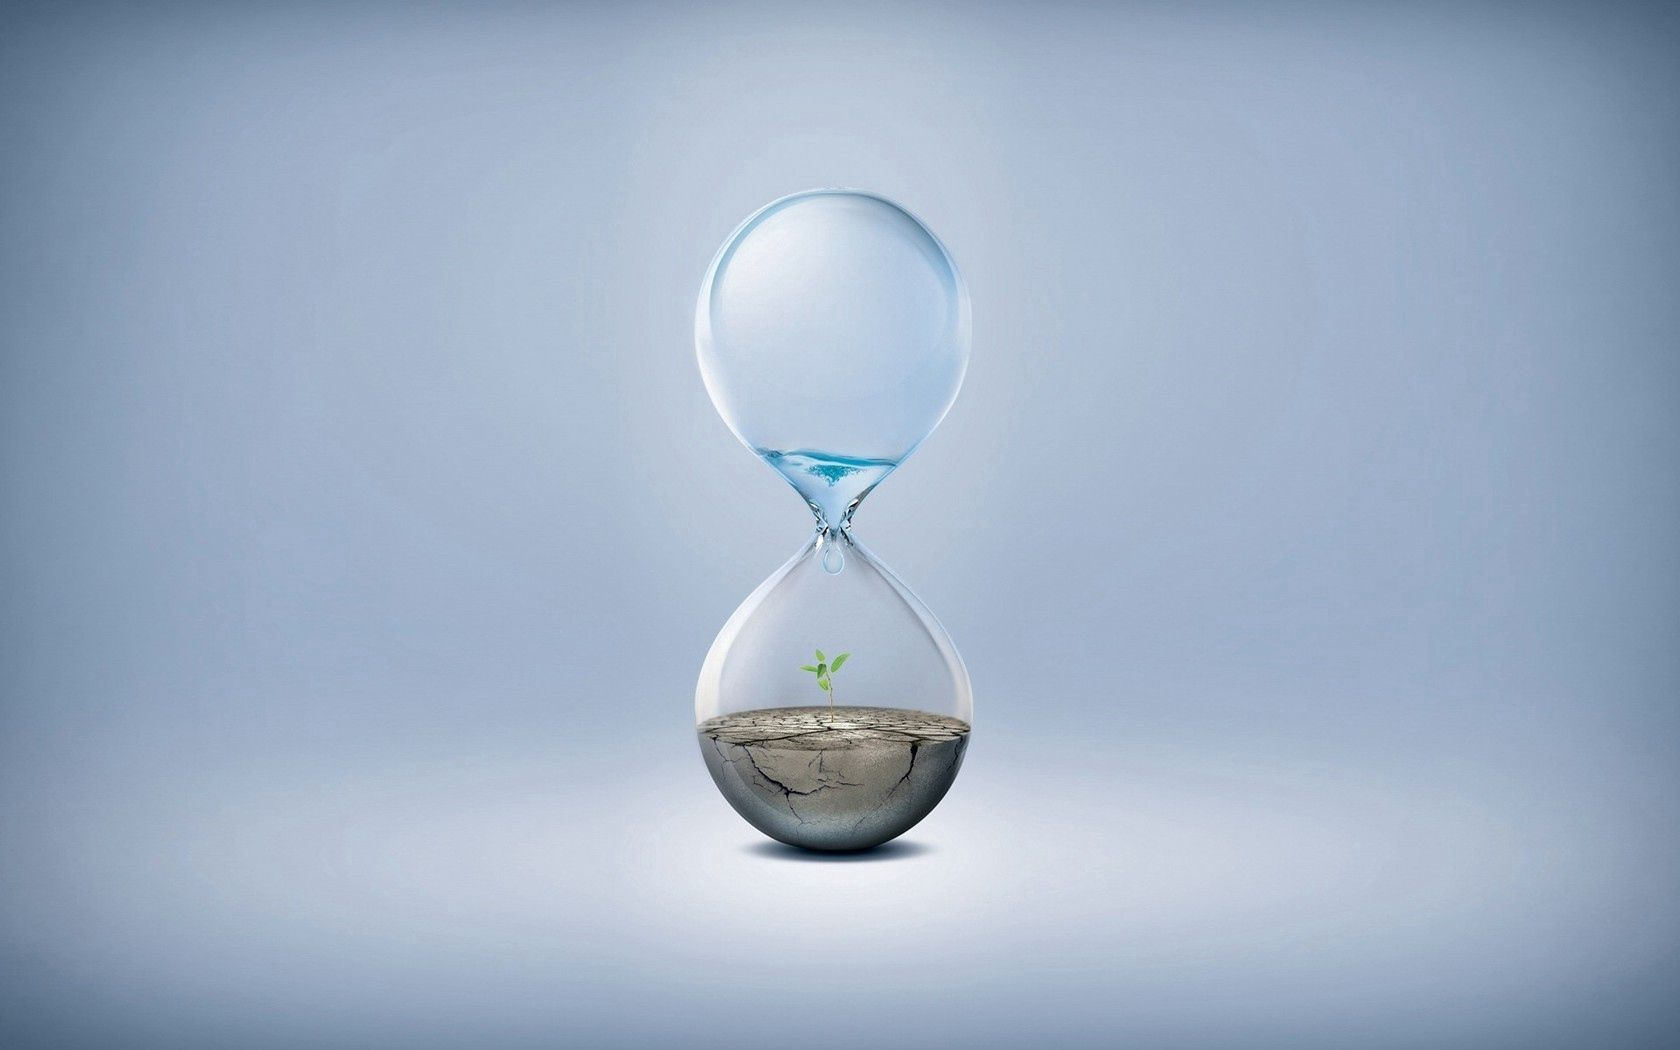 80474 download wallpaper Water, Clock, Plant, Miscellanea, Miscellaneous, Land, Glass, Drop screensavers and pictures for free